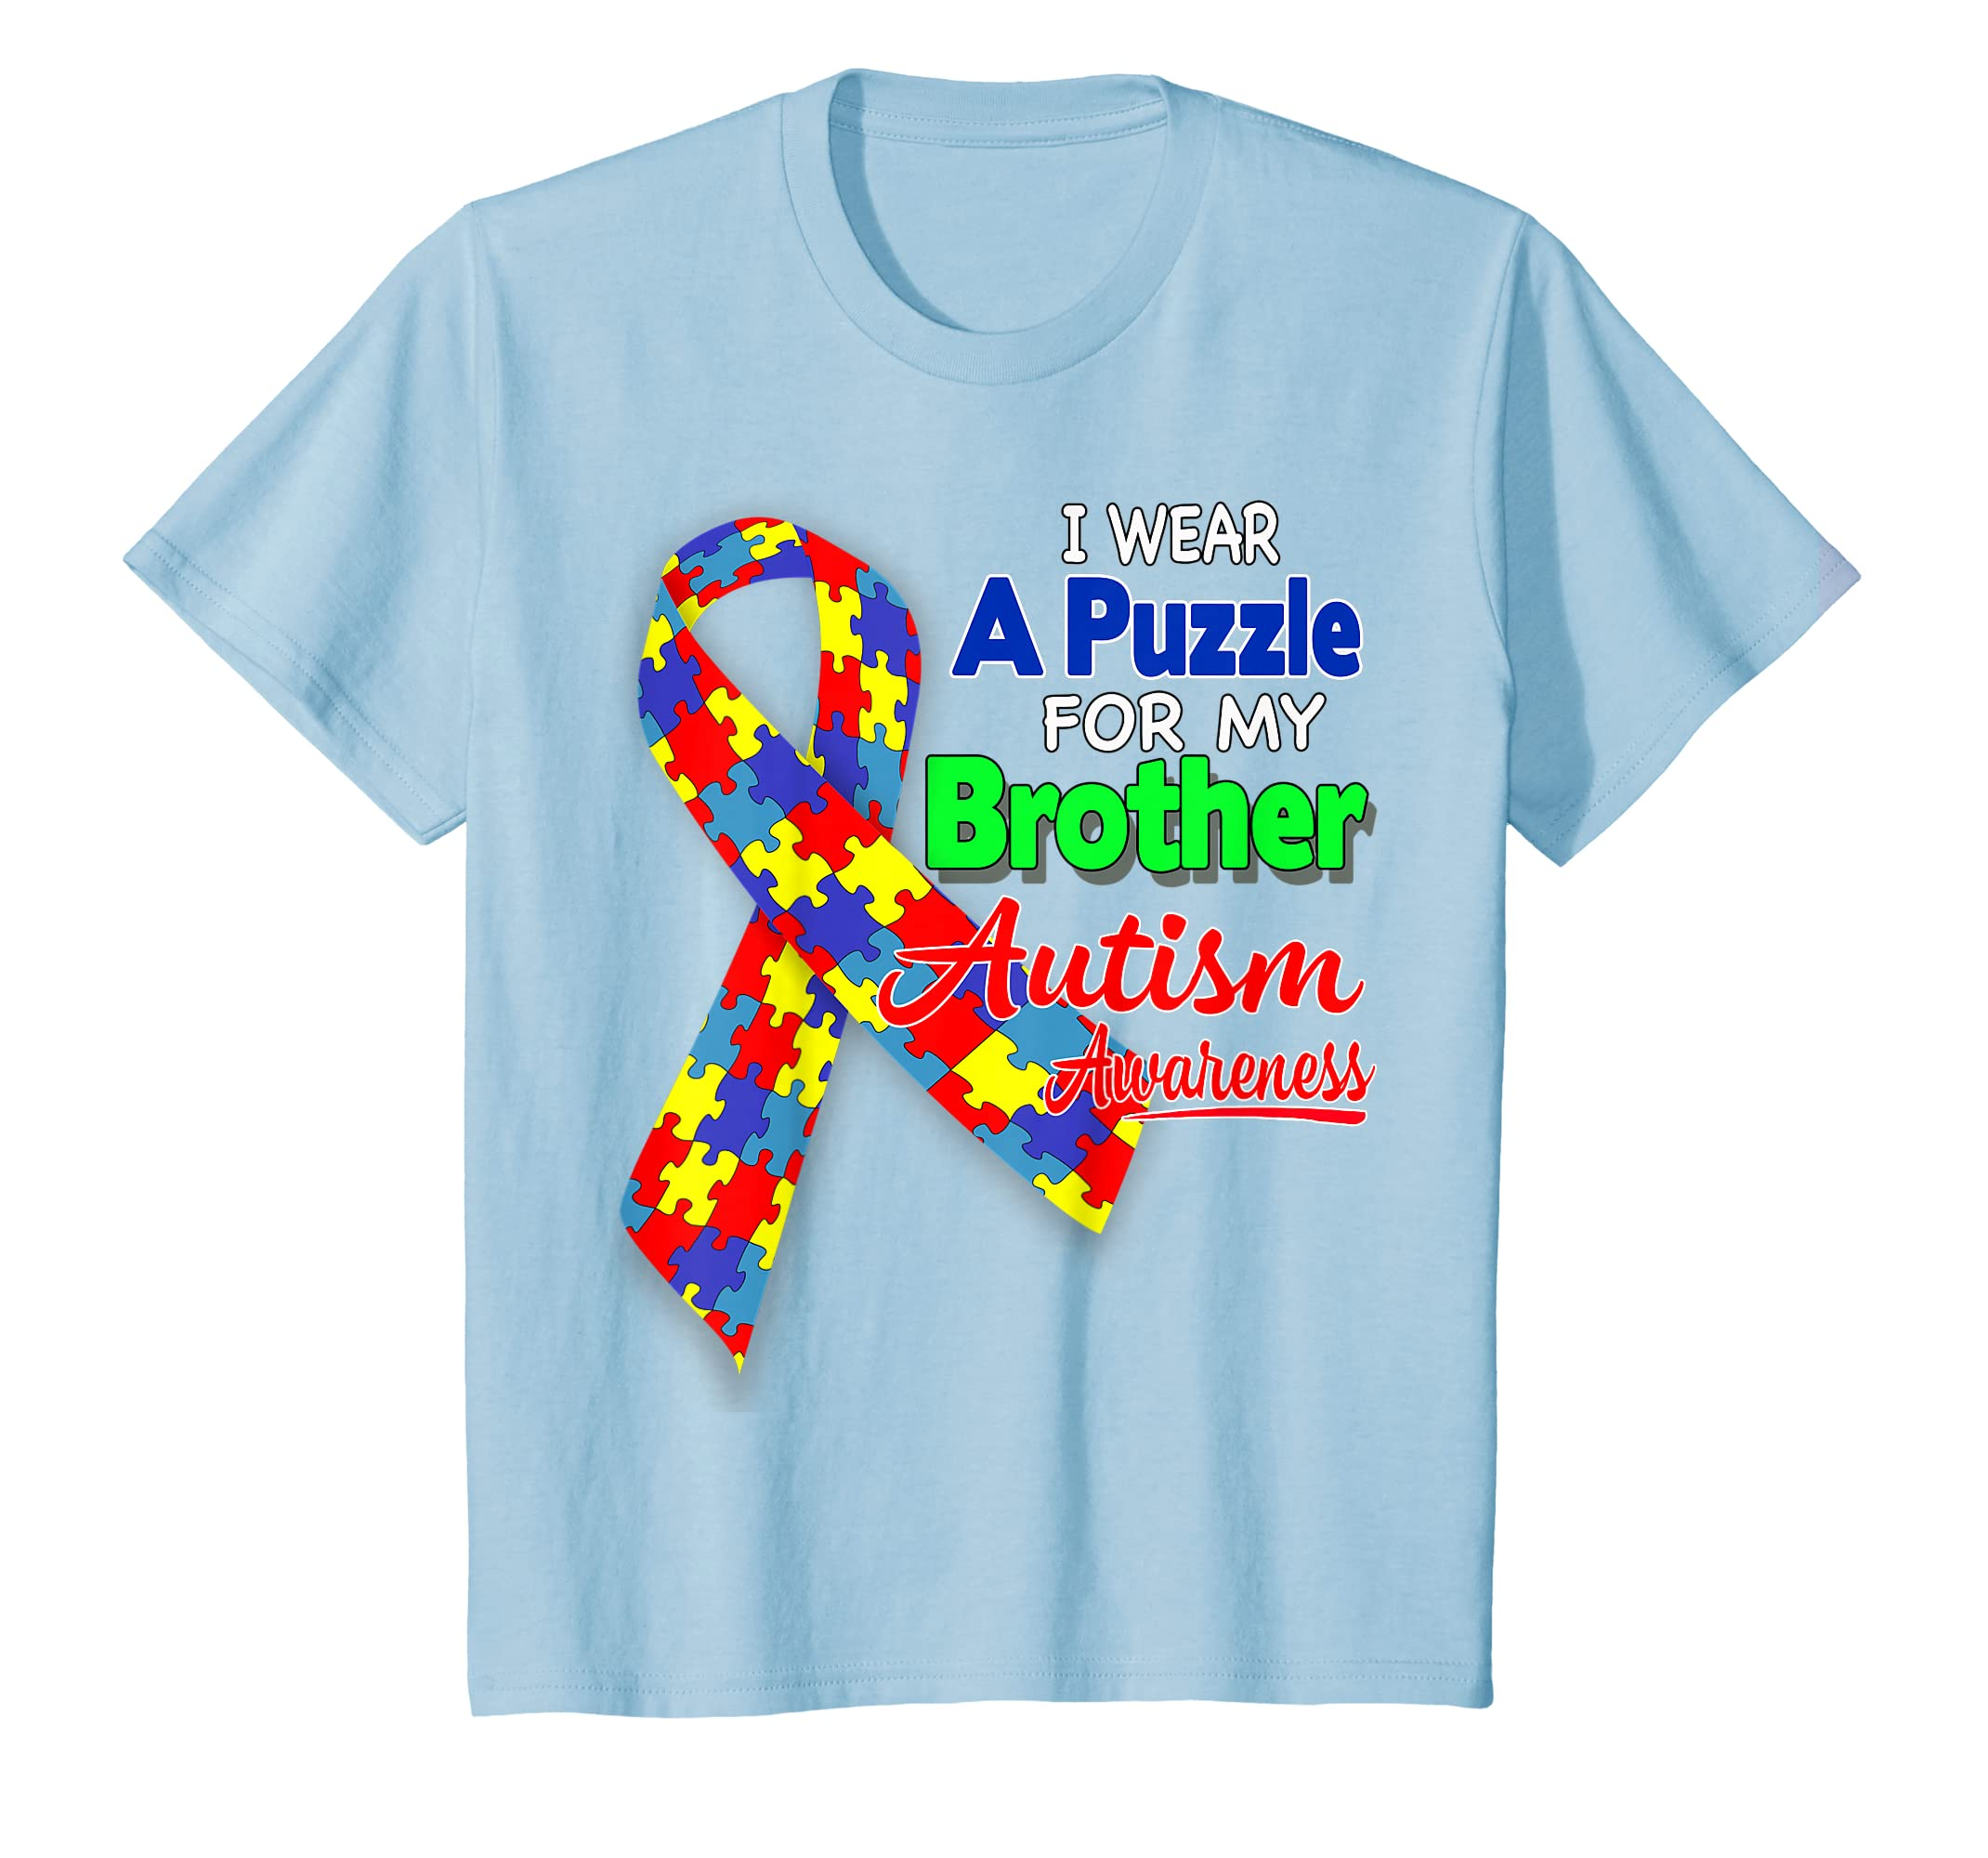 94e28f3b7 Amazon.com: I wear a Puzzle for my Brother - Autism Awareness shirt:  Clothing